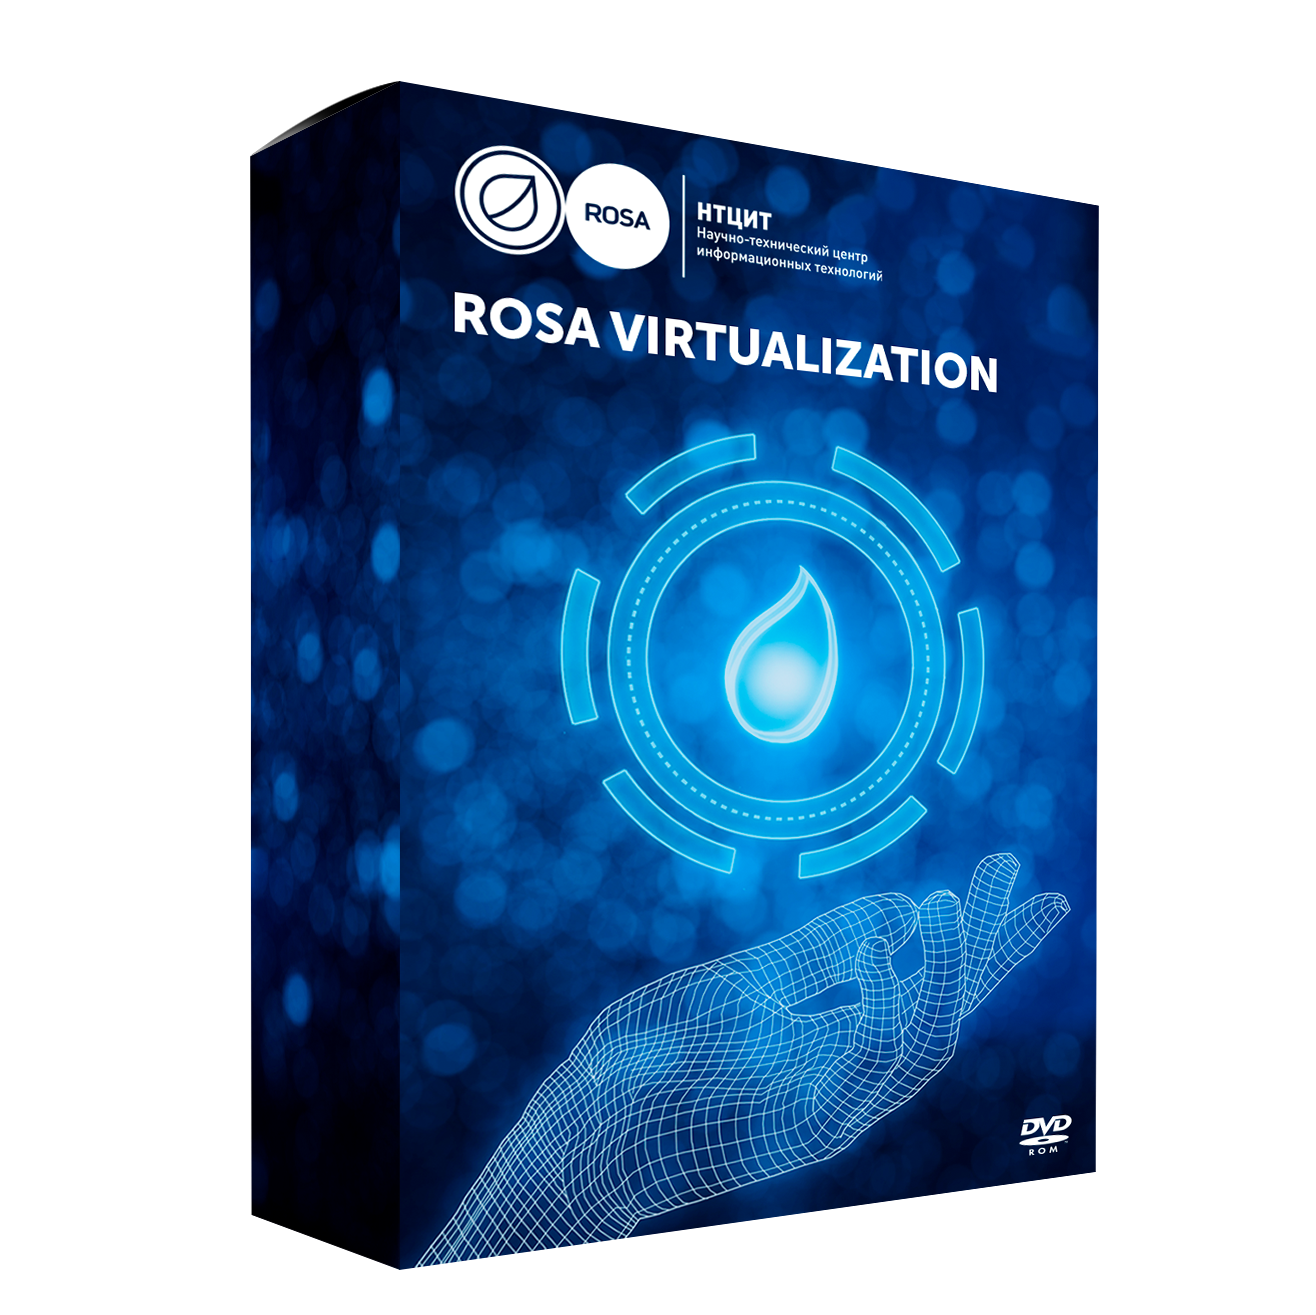 ROSA Virtualization